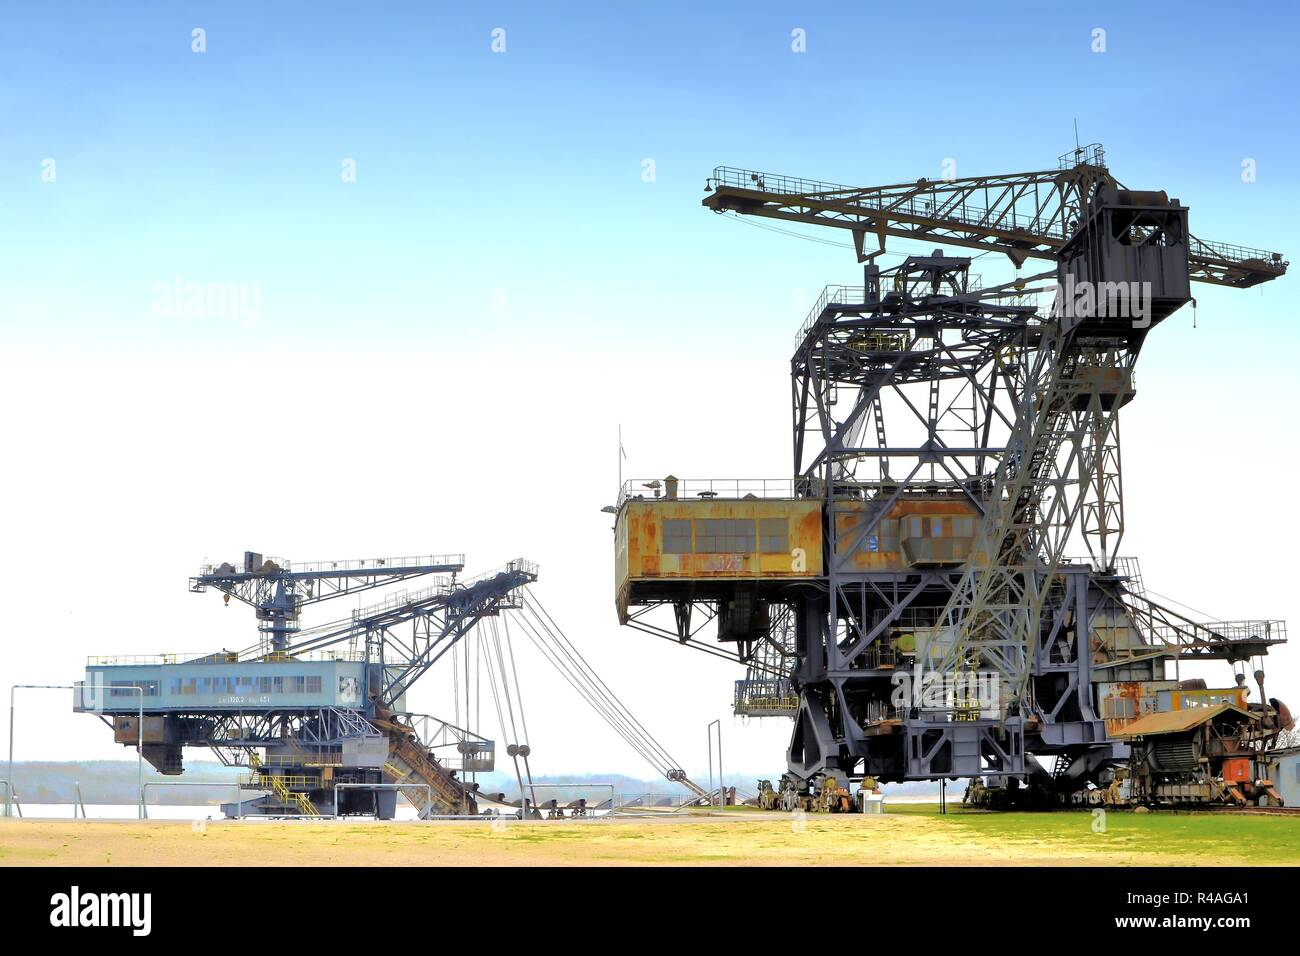 rusty coal excavator in the decommissioned lignite opencast mine Ferropolis - Stock Image